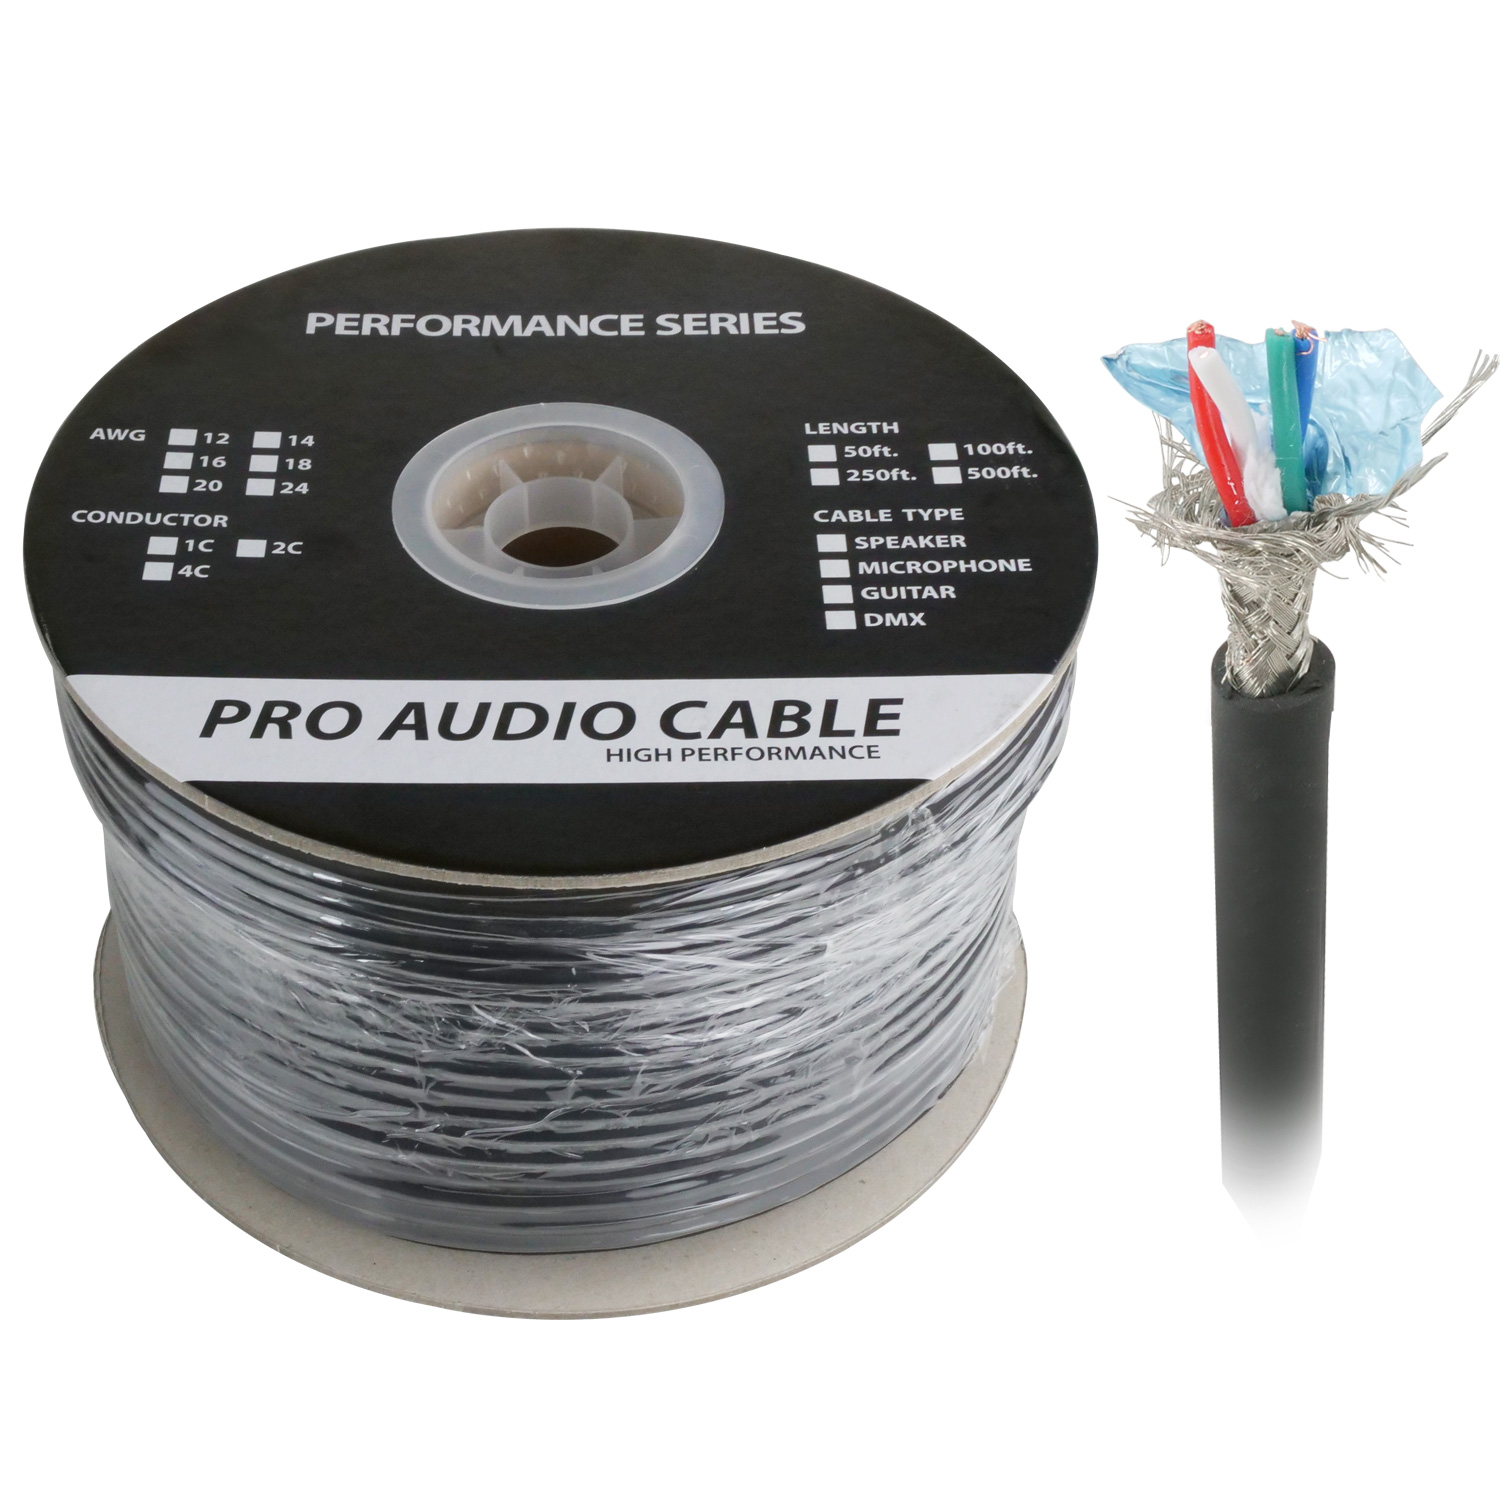 500ft Two Pair DMX Digital Lighting Control Cable, Braid Shielding